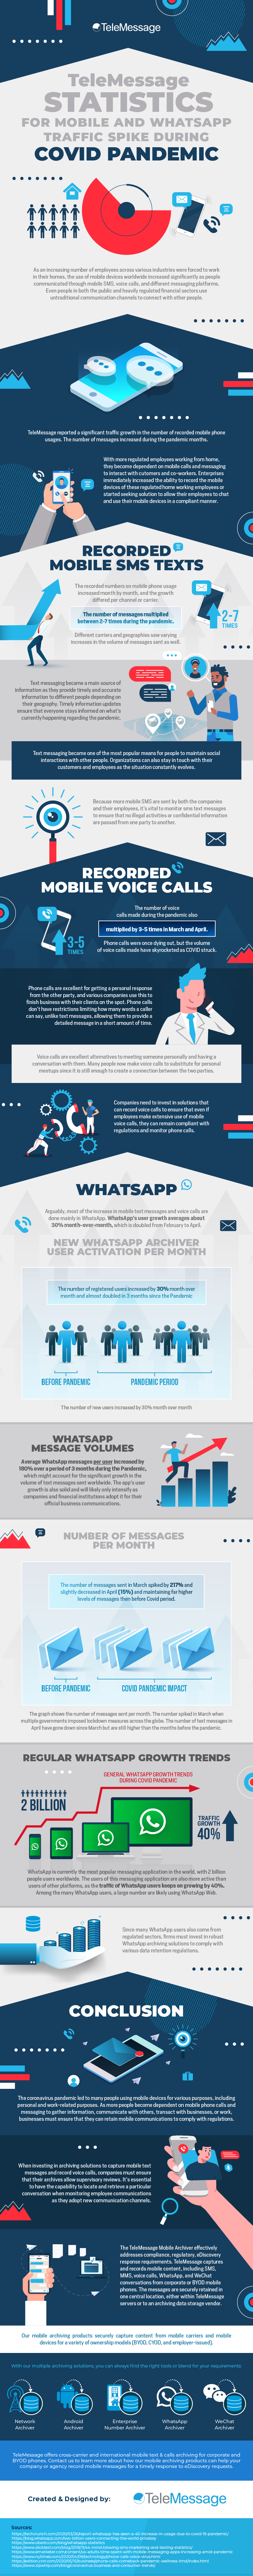 TeleMessage Statistics for Mobile and WhatsApp Traffic Spike During Pandemic #infographic